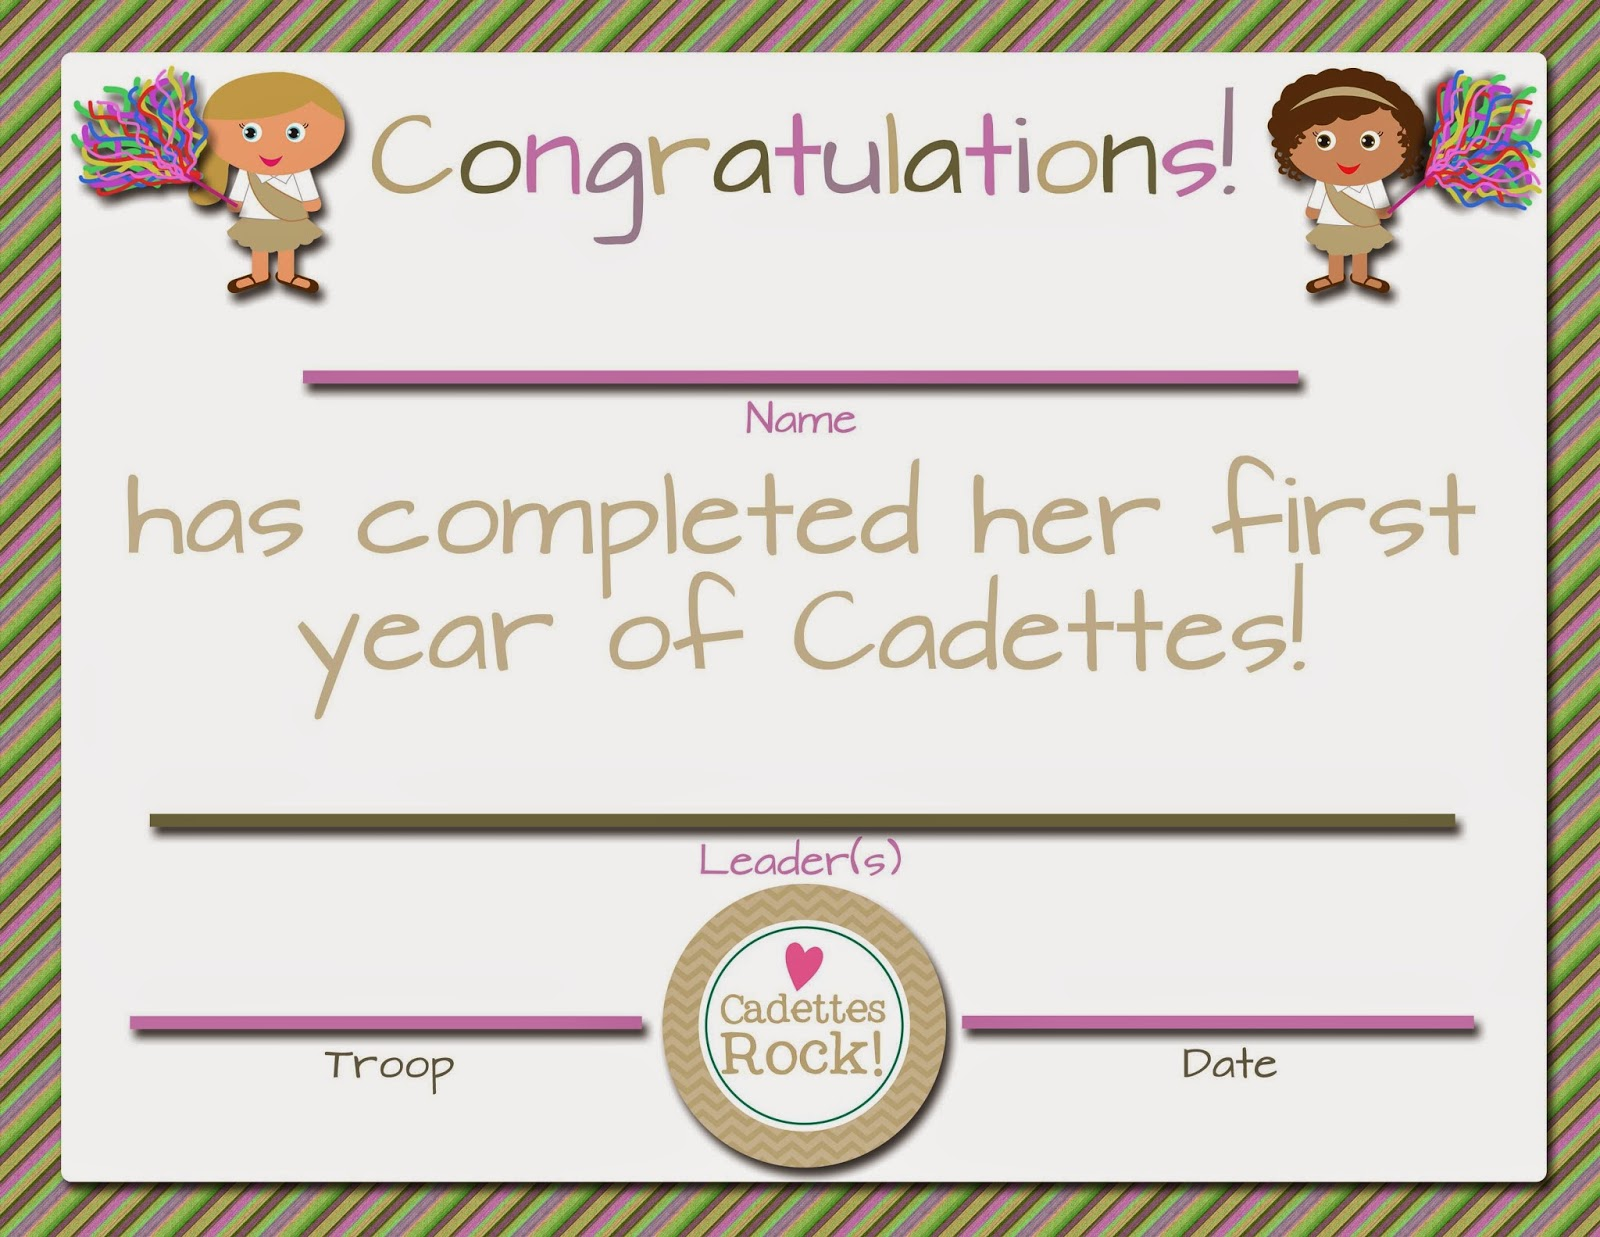 Girl Scout Bridging Ceremony Invitations as adorable invitations template